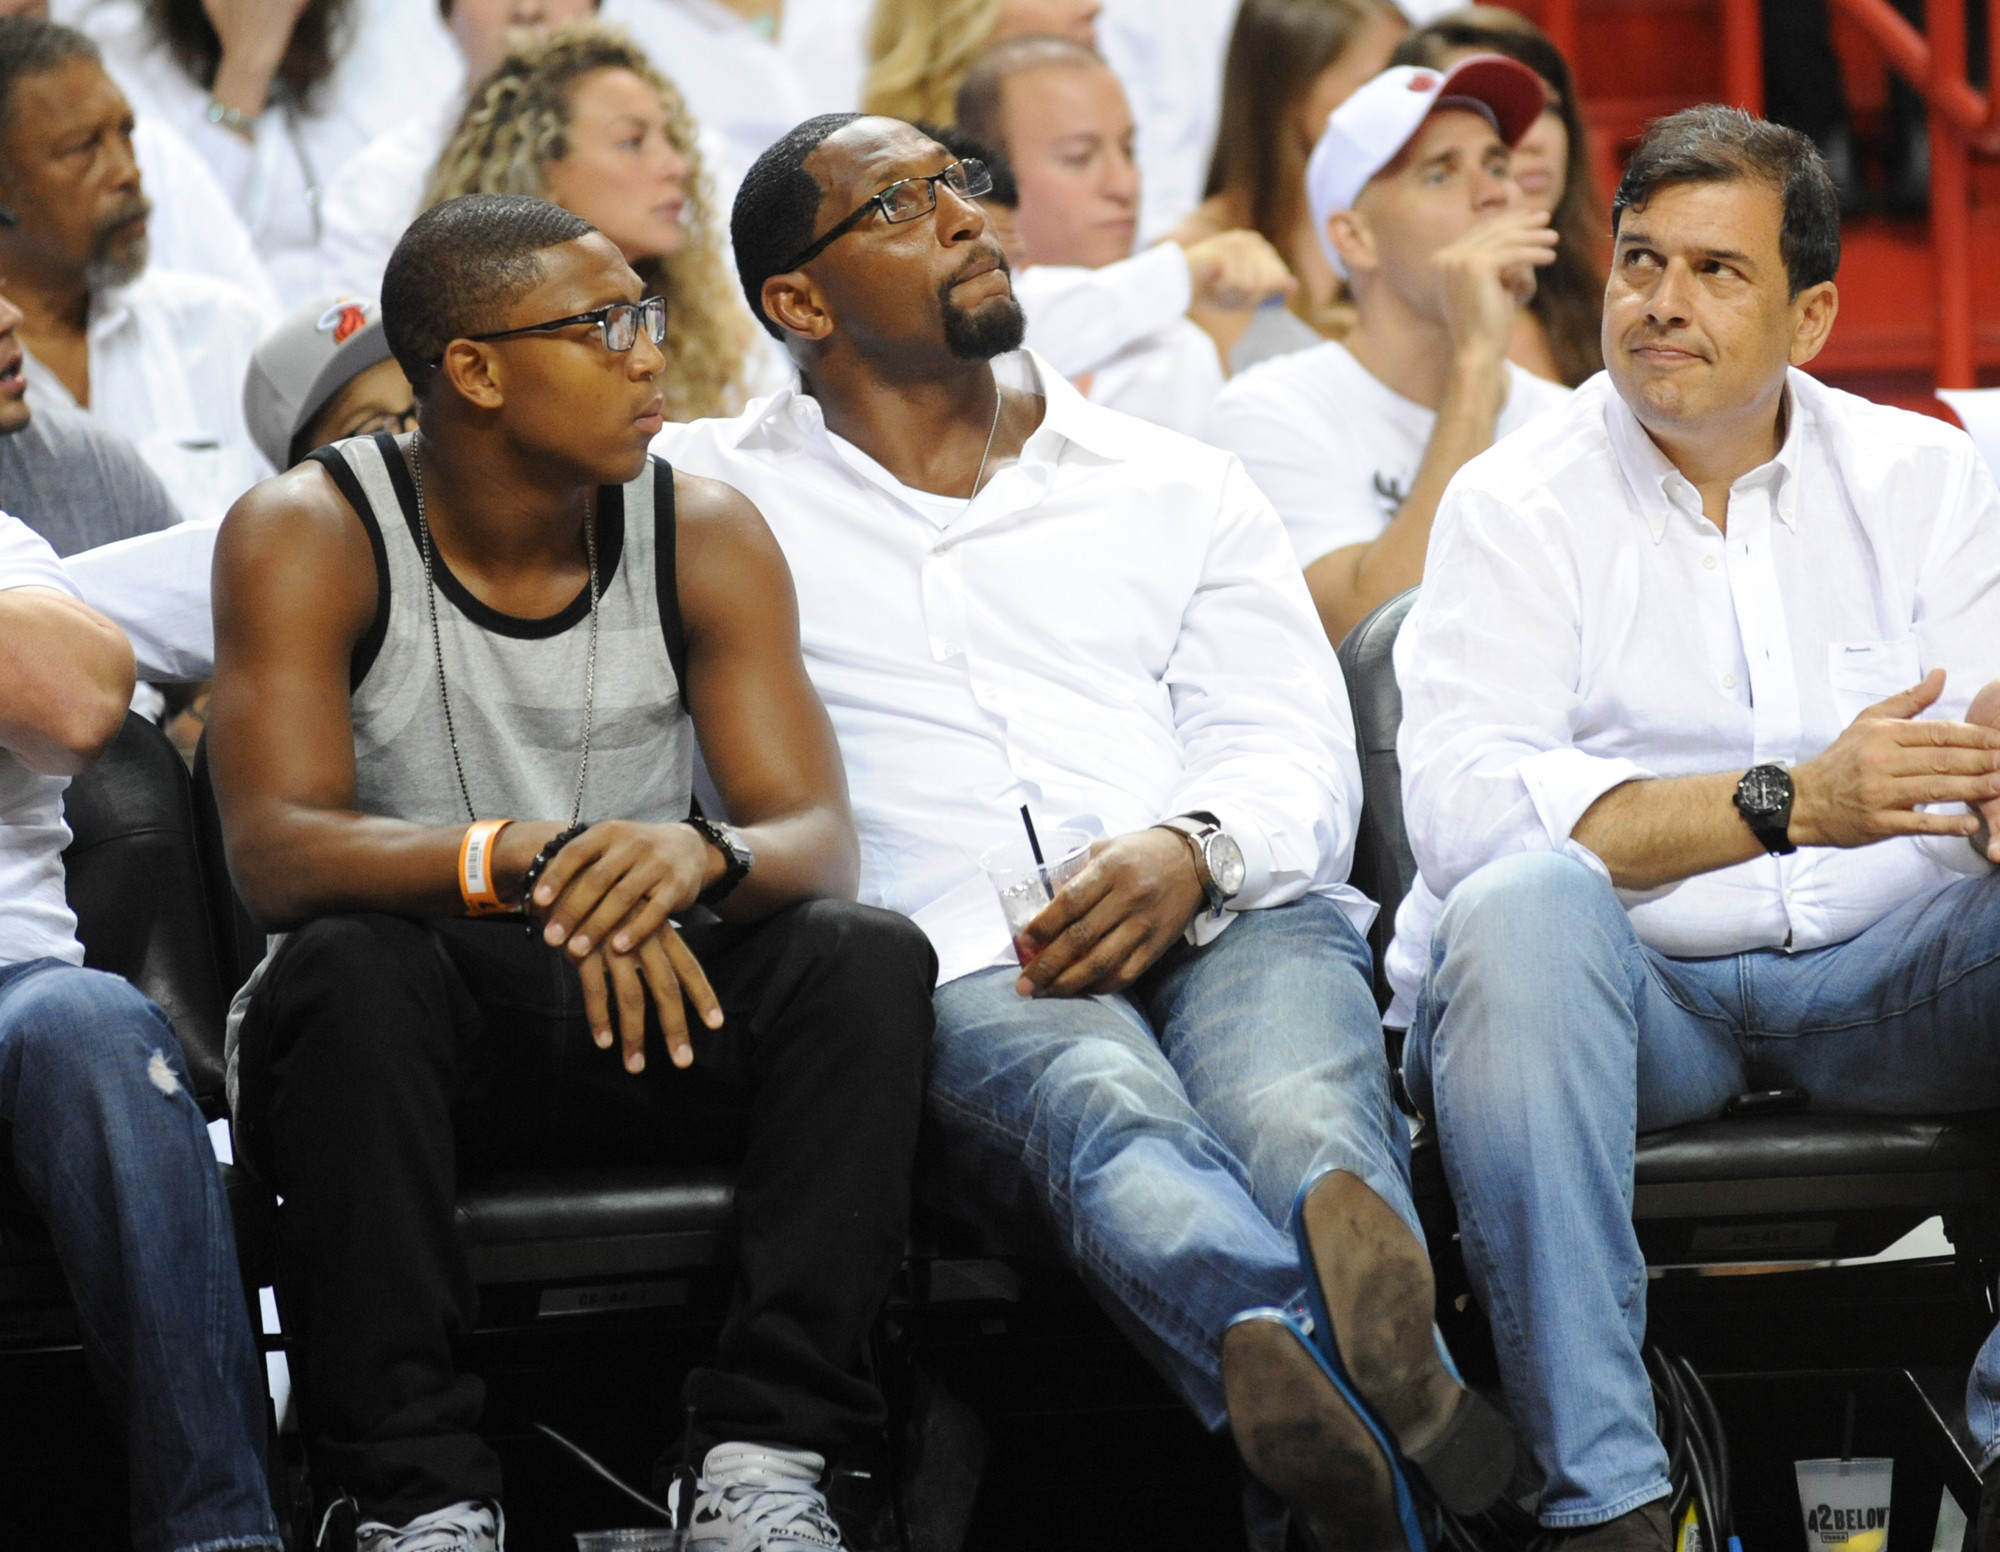 Celebs spotted at Miami Heat games - Ray Lewis